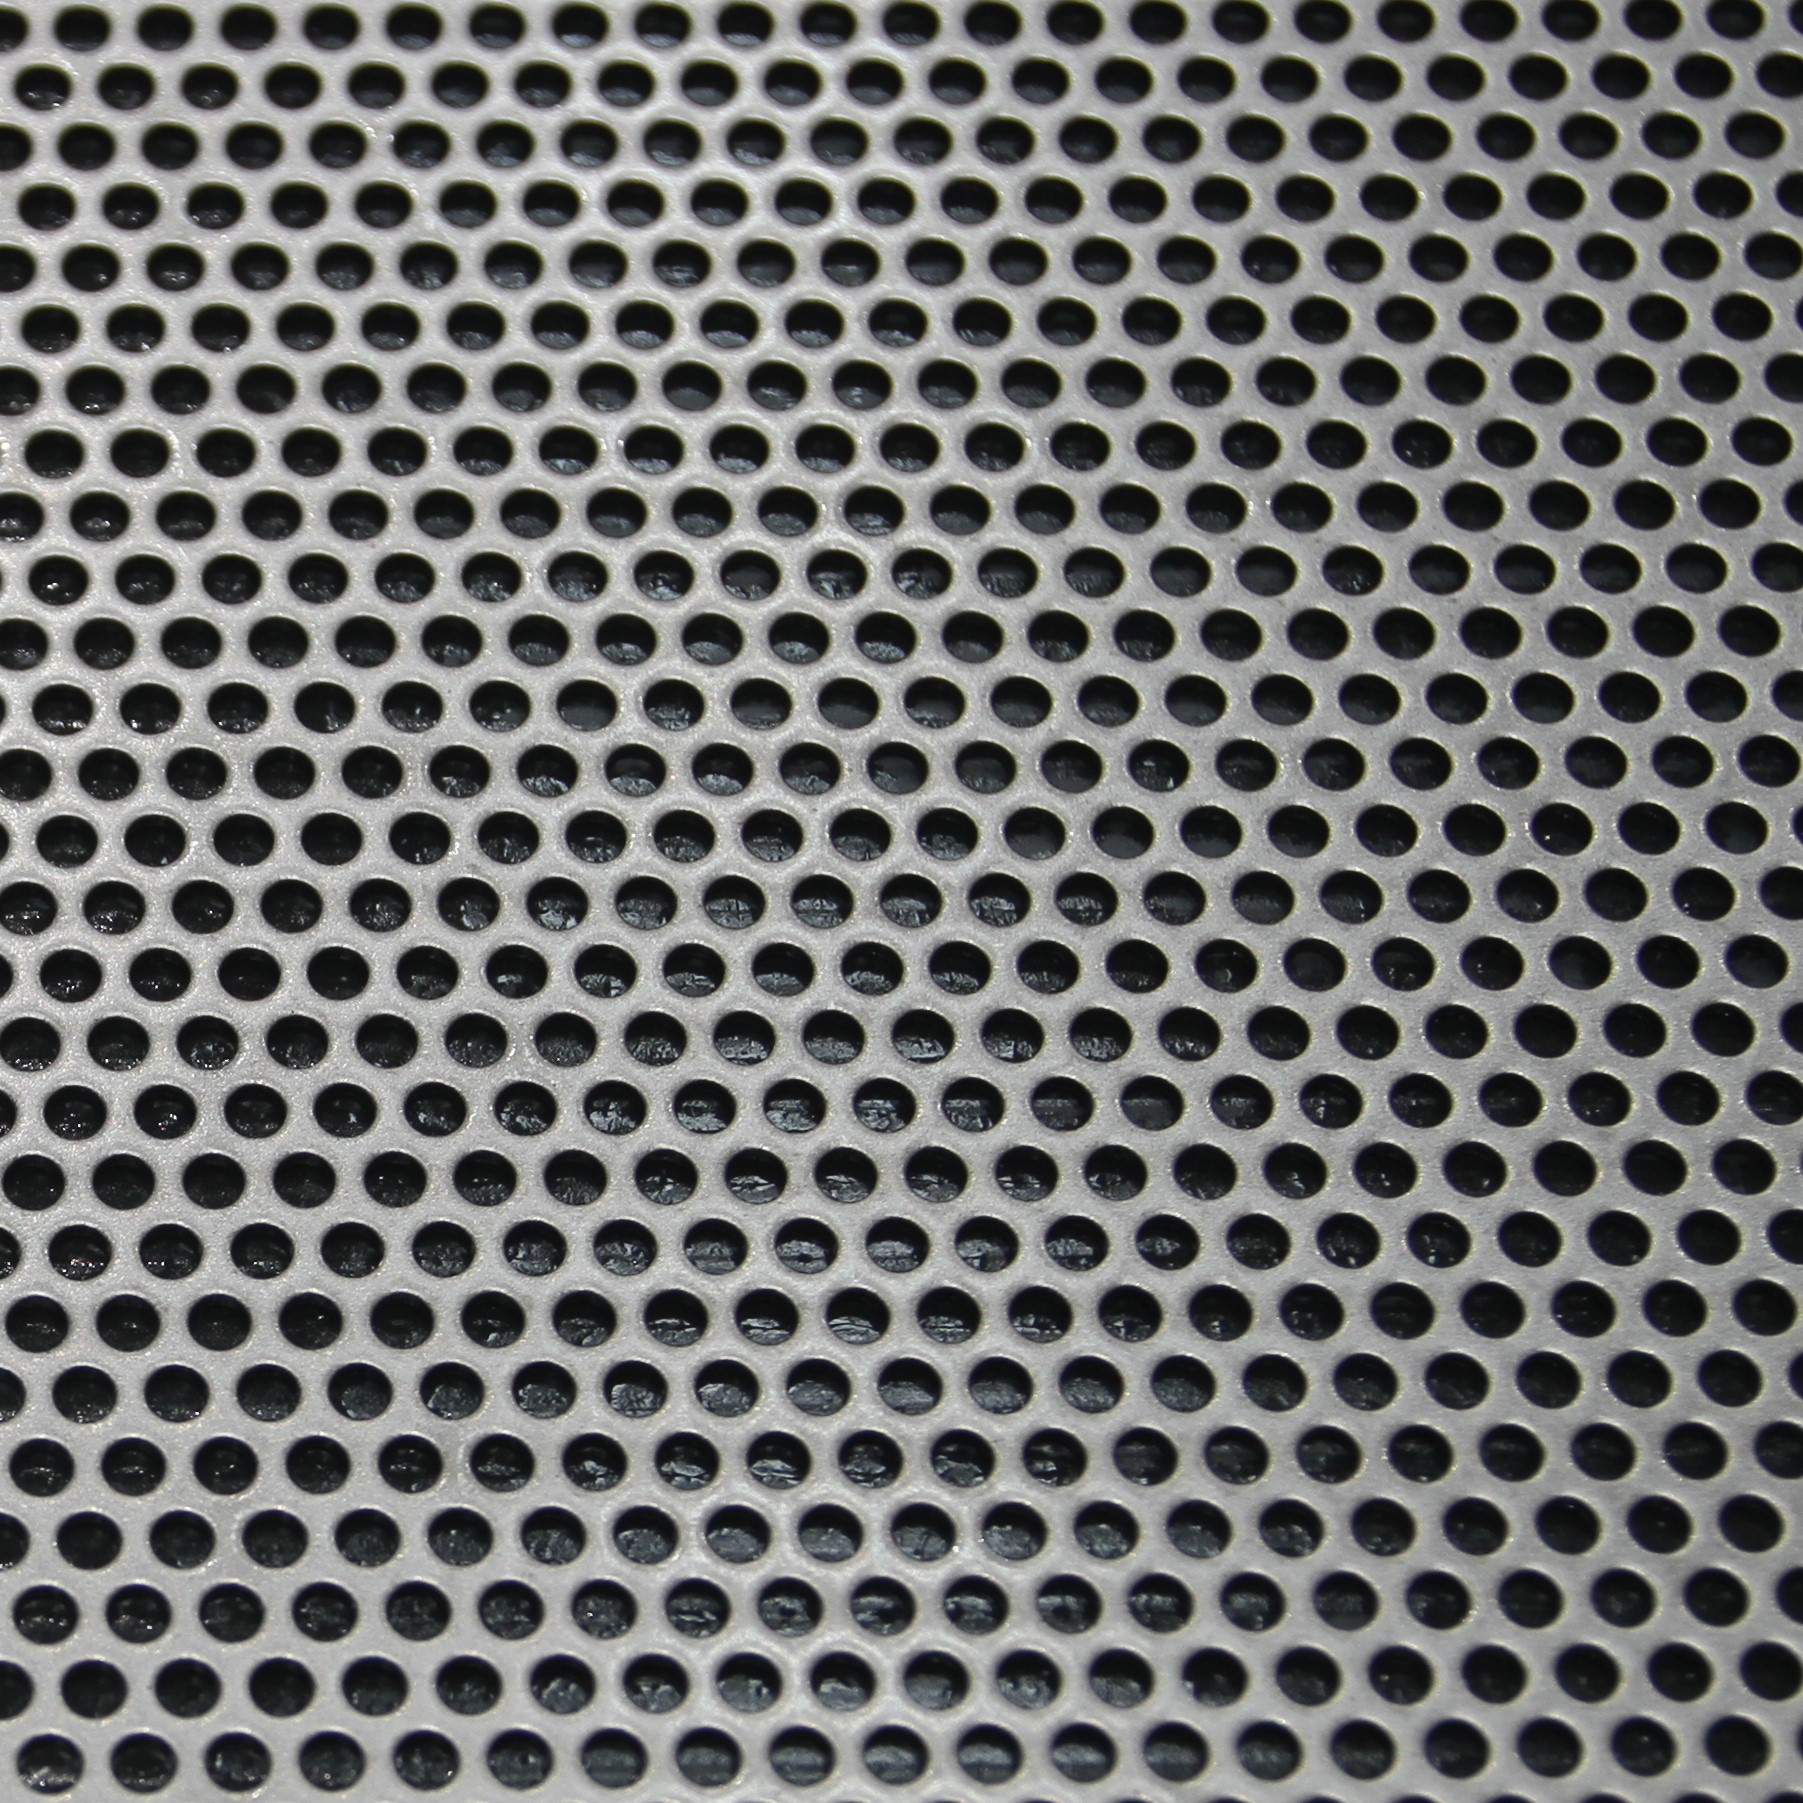 0.8mm Perforated Steel Sheet